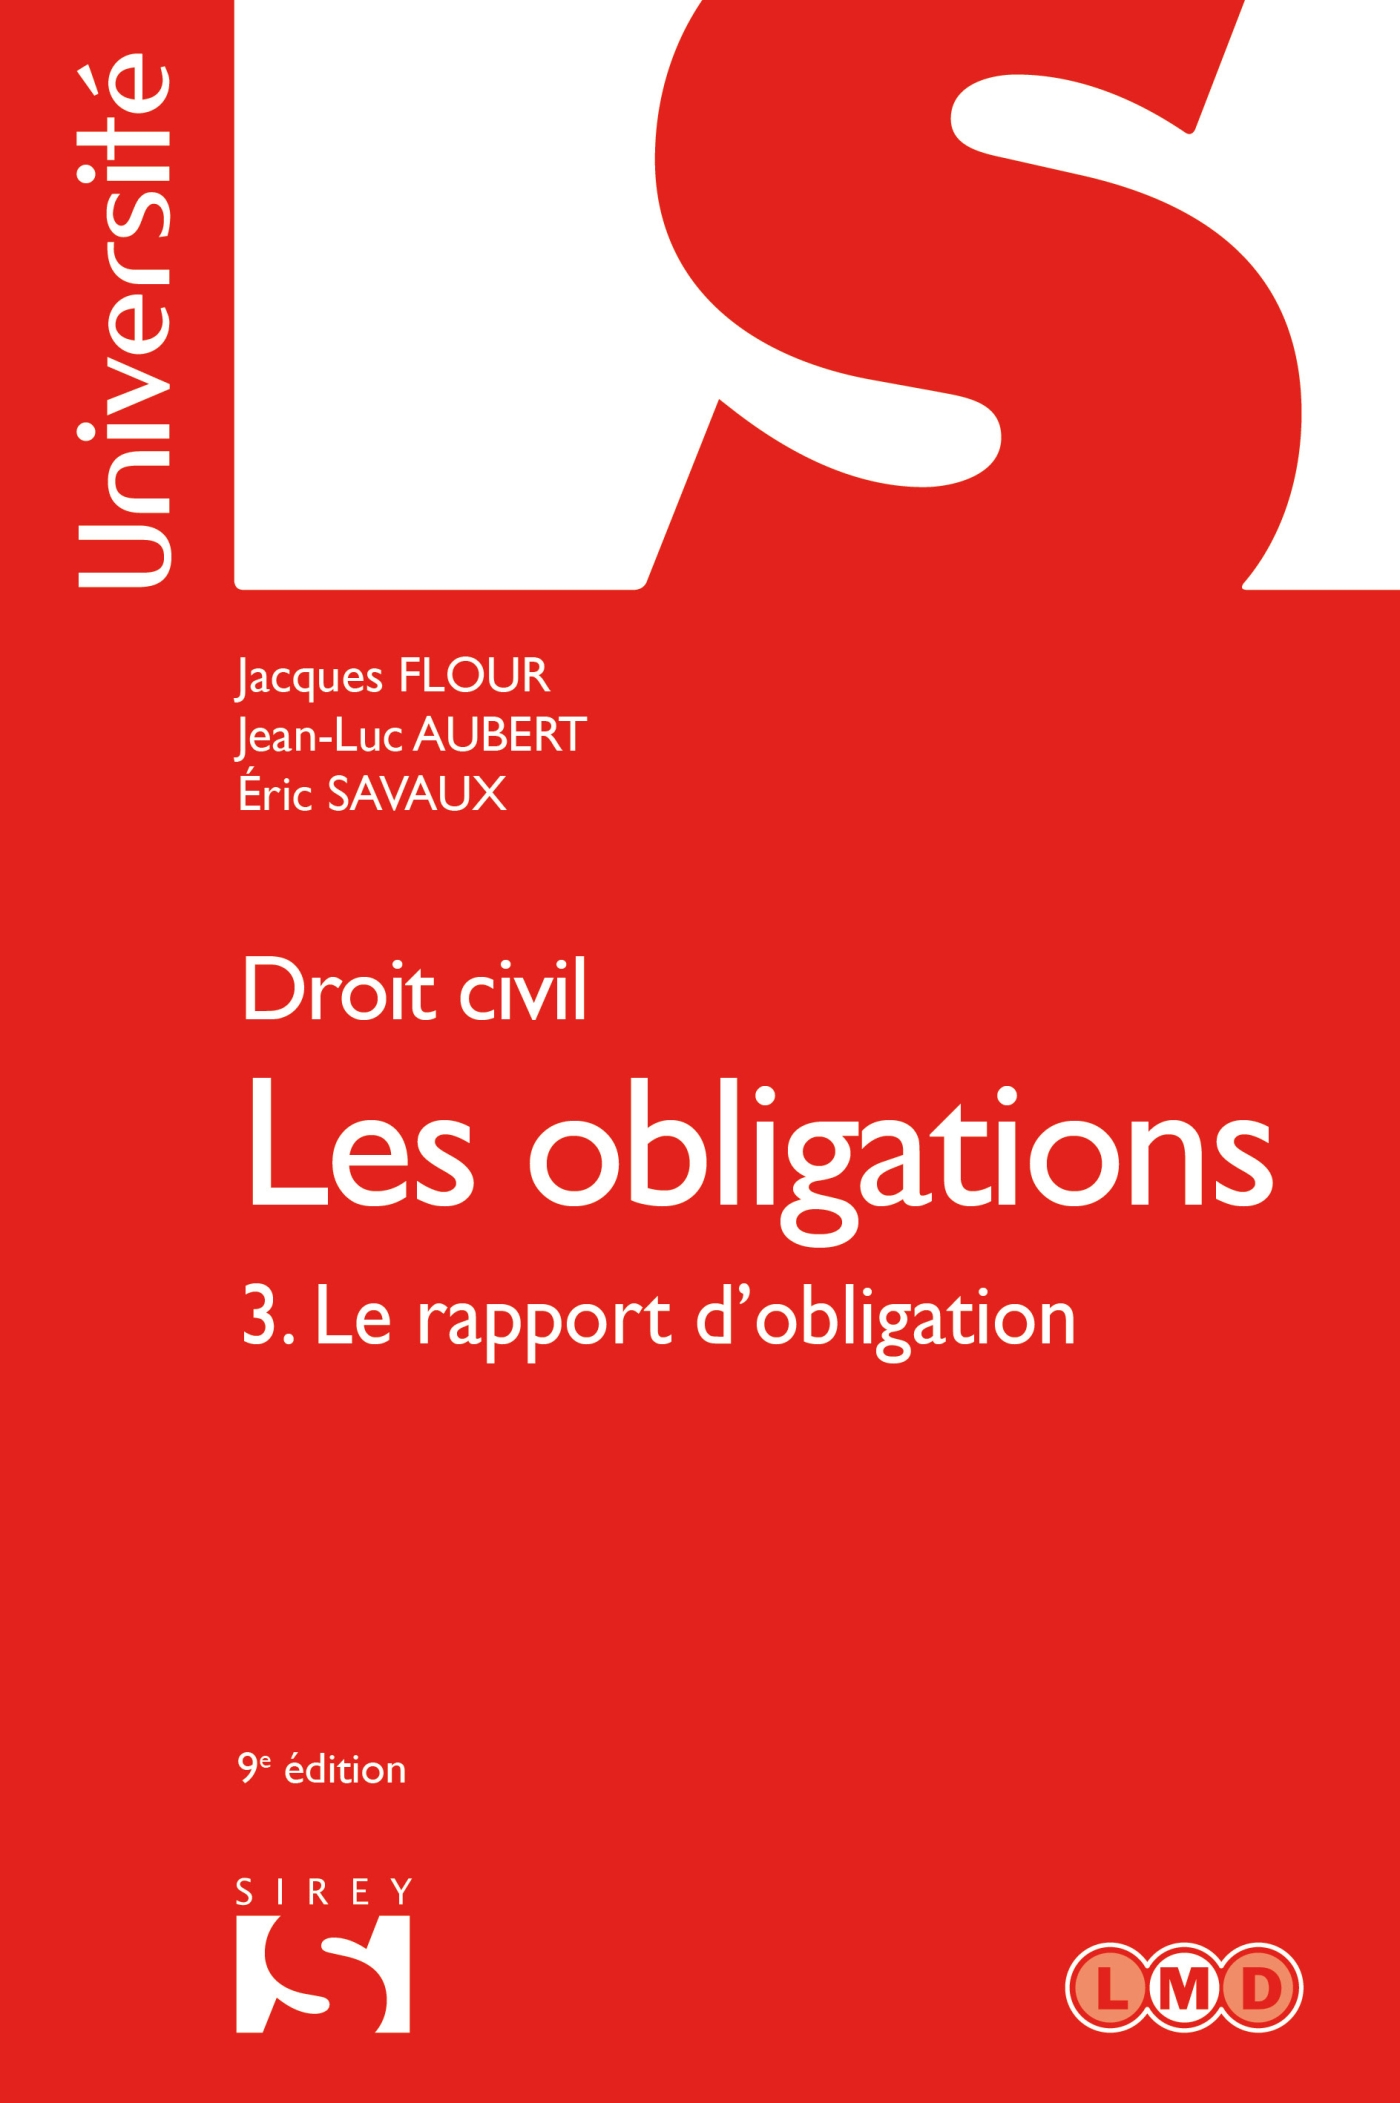 Droit civil. Les obligations Volume 3. 3. Le rapport d'obligation